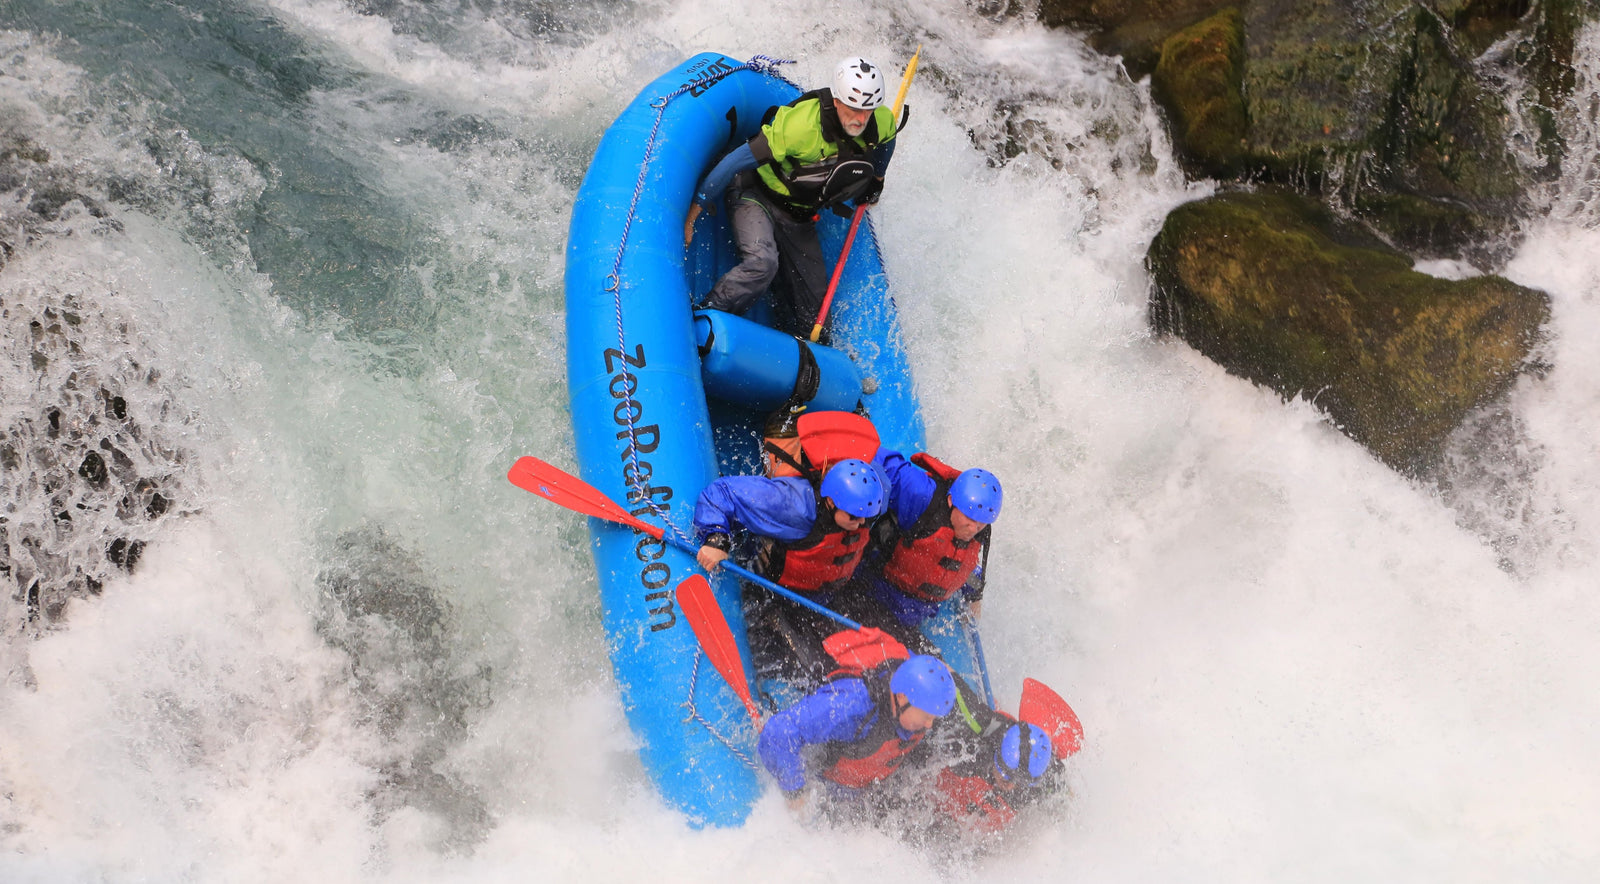 SOTAR | Whitewater Rafts, Catarafts, Inflatable Kayaks and accessories